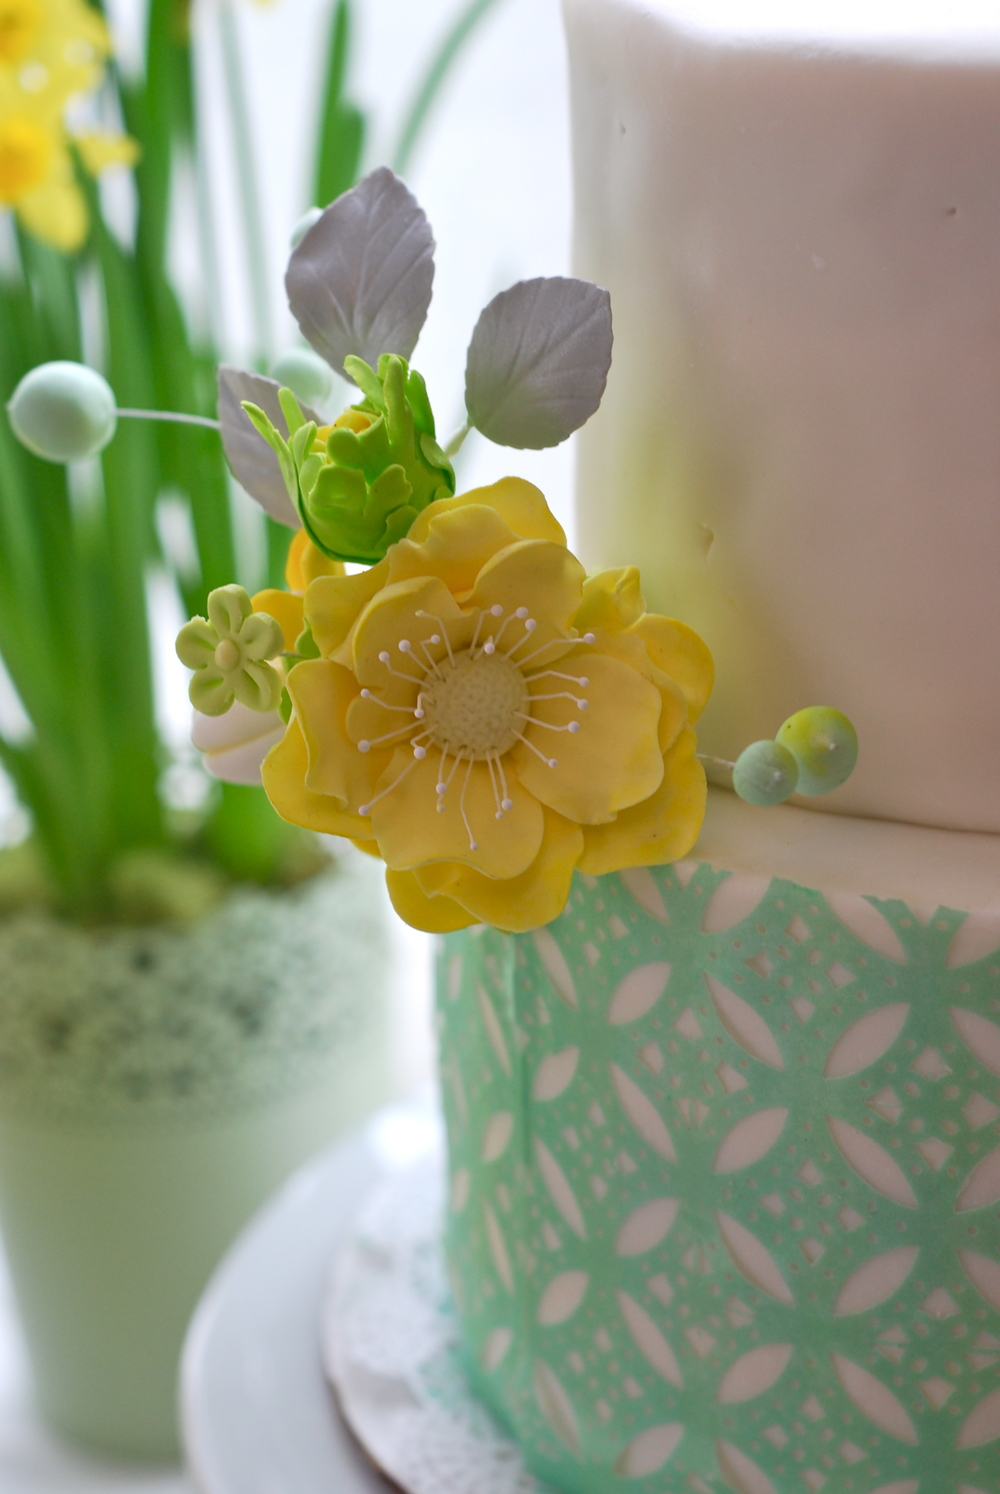 Handmade sugar flowers.  Yellow anemone flower and bud.